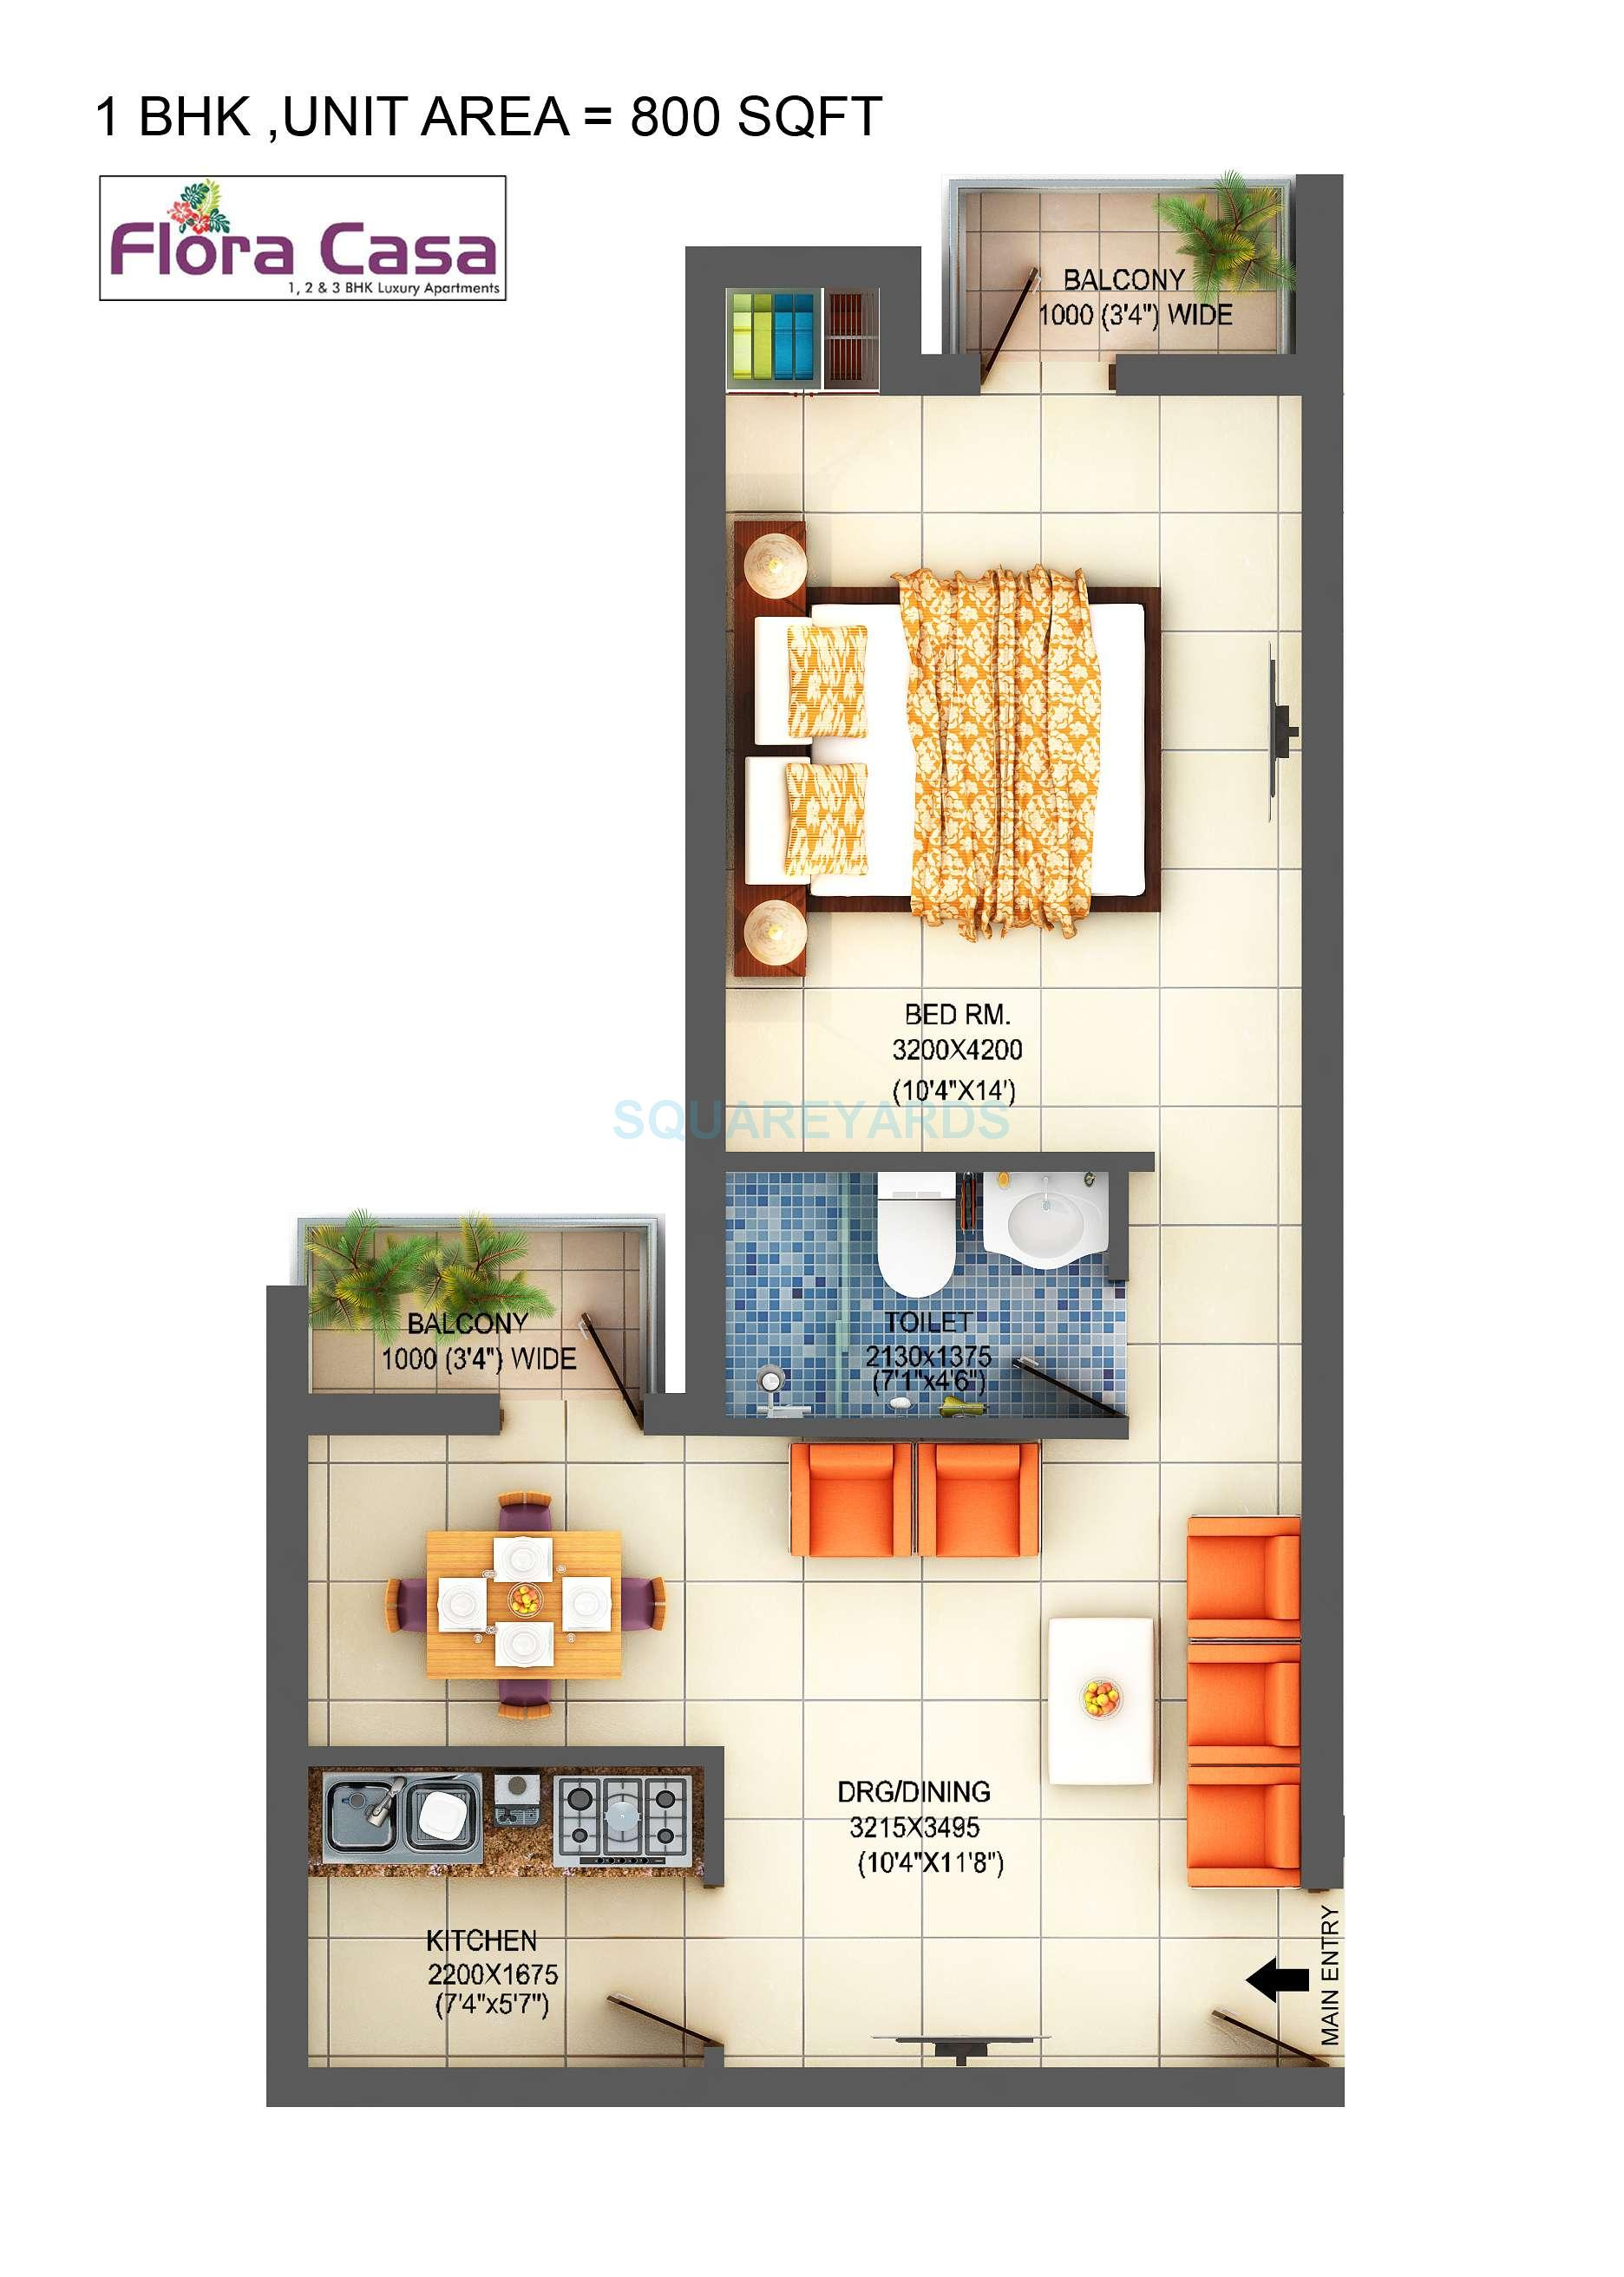 Bhk Sq Ft Apartment For Sale In Adwik Group Flora Casa At